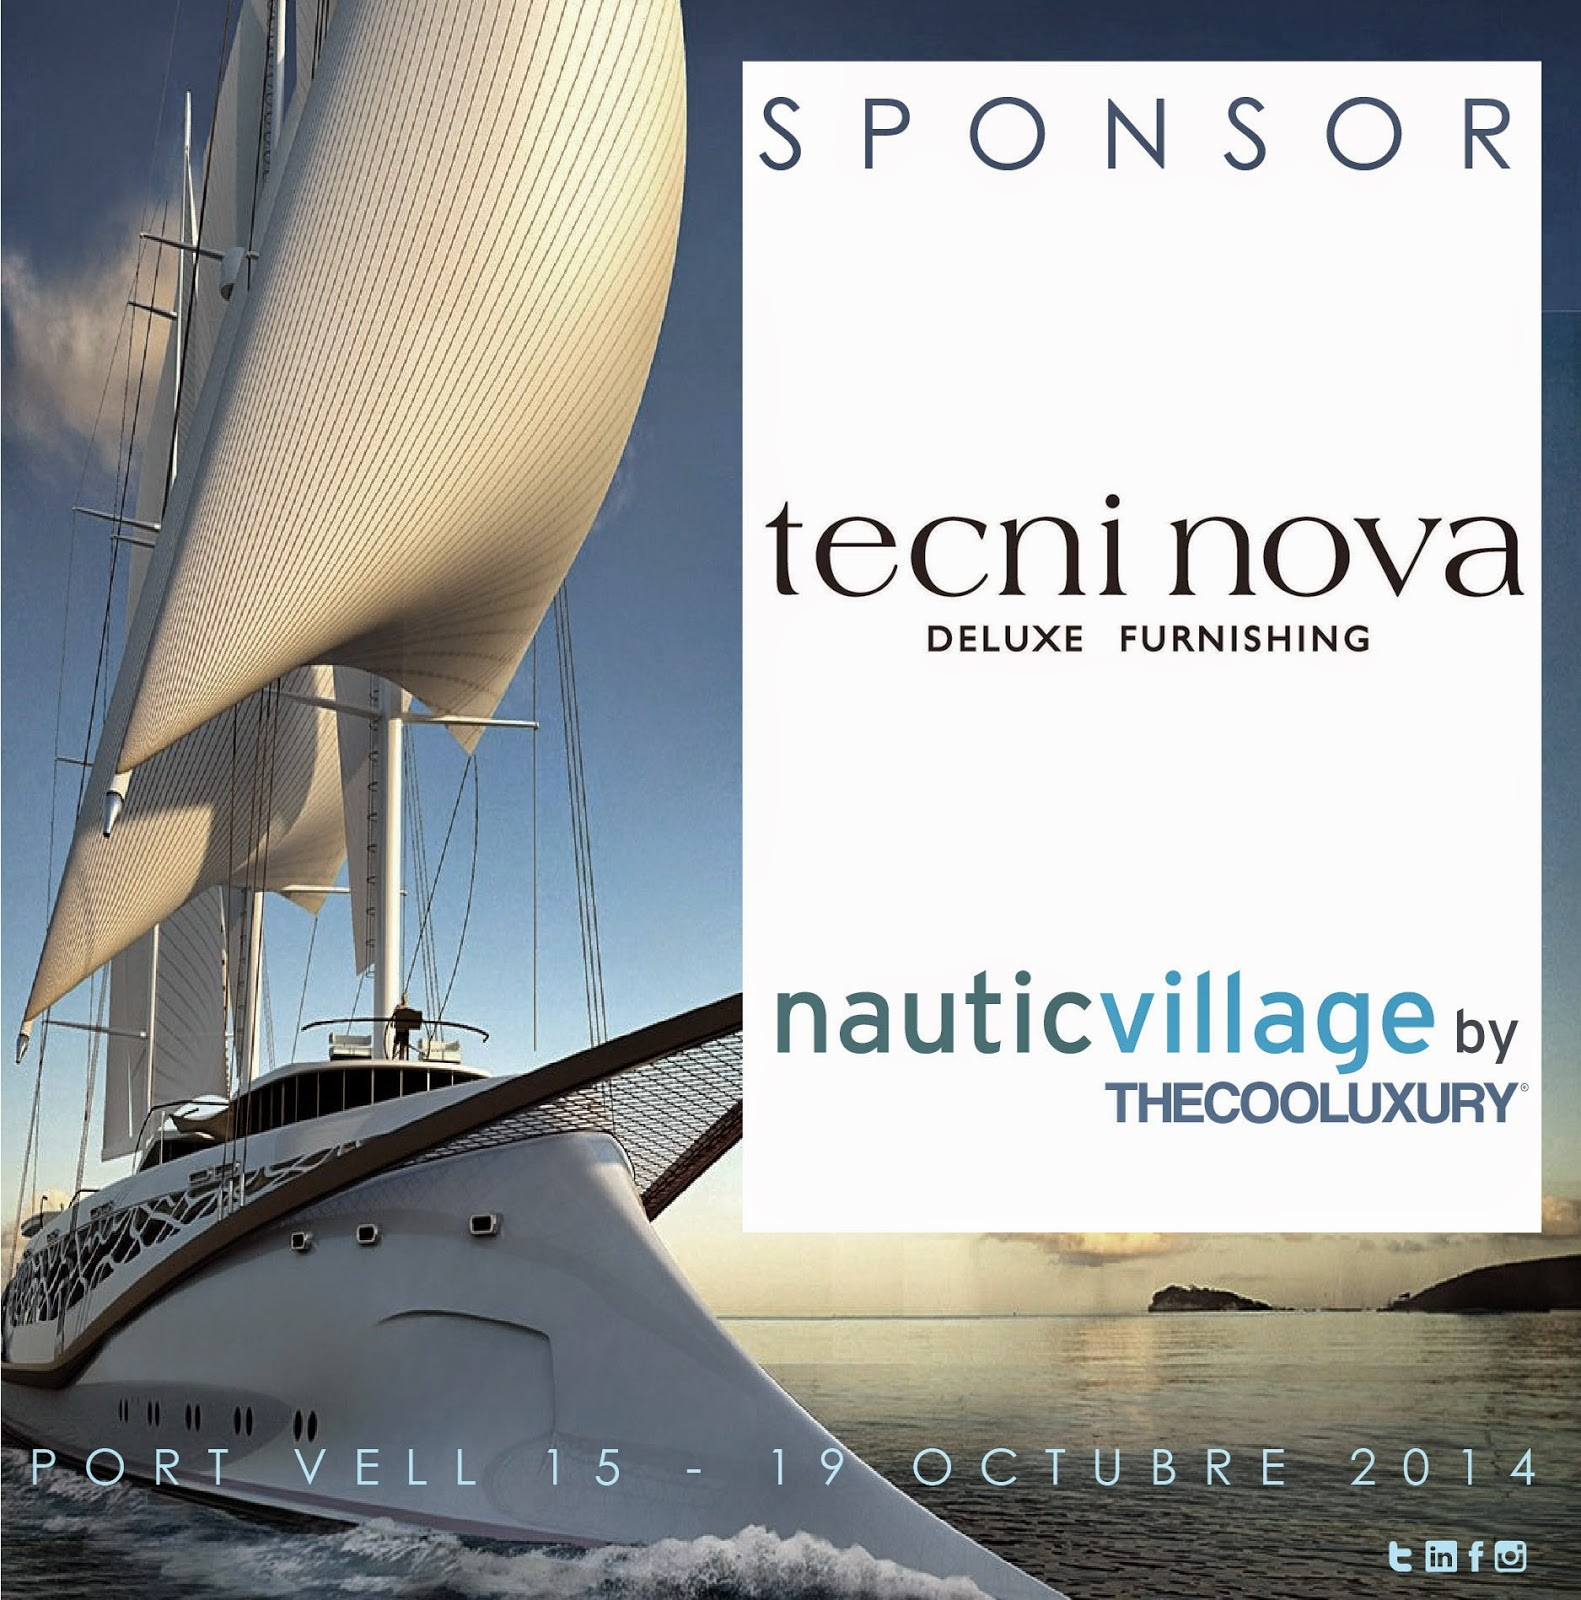 tecninova-nautic-village-thecooluxury-salon-nautico-barcelona-2014-deluxe-furnishing-upholstery-outdoor-furniture-upholstery-luxury-lifestile-yath-sailing-shoot-decoracion-lujo-muebles-exterior-terraza-yate-design-luxurious-sofa-armchair-art-design-beauty-business-fashion-gourmet-lifestyle-technology-thecooluxuryxtecninova-nauticvillage14